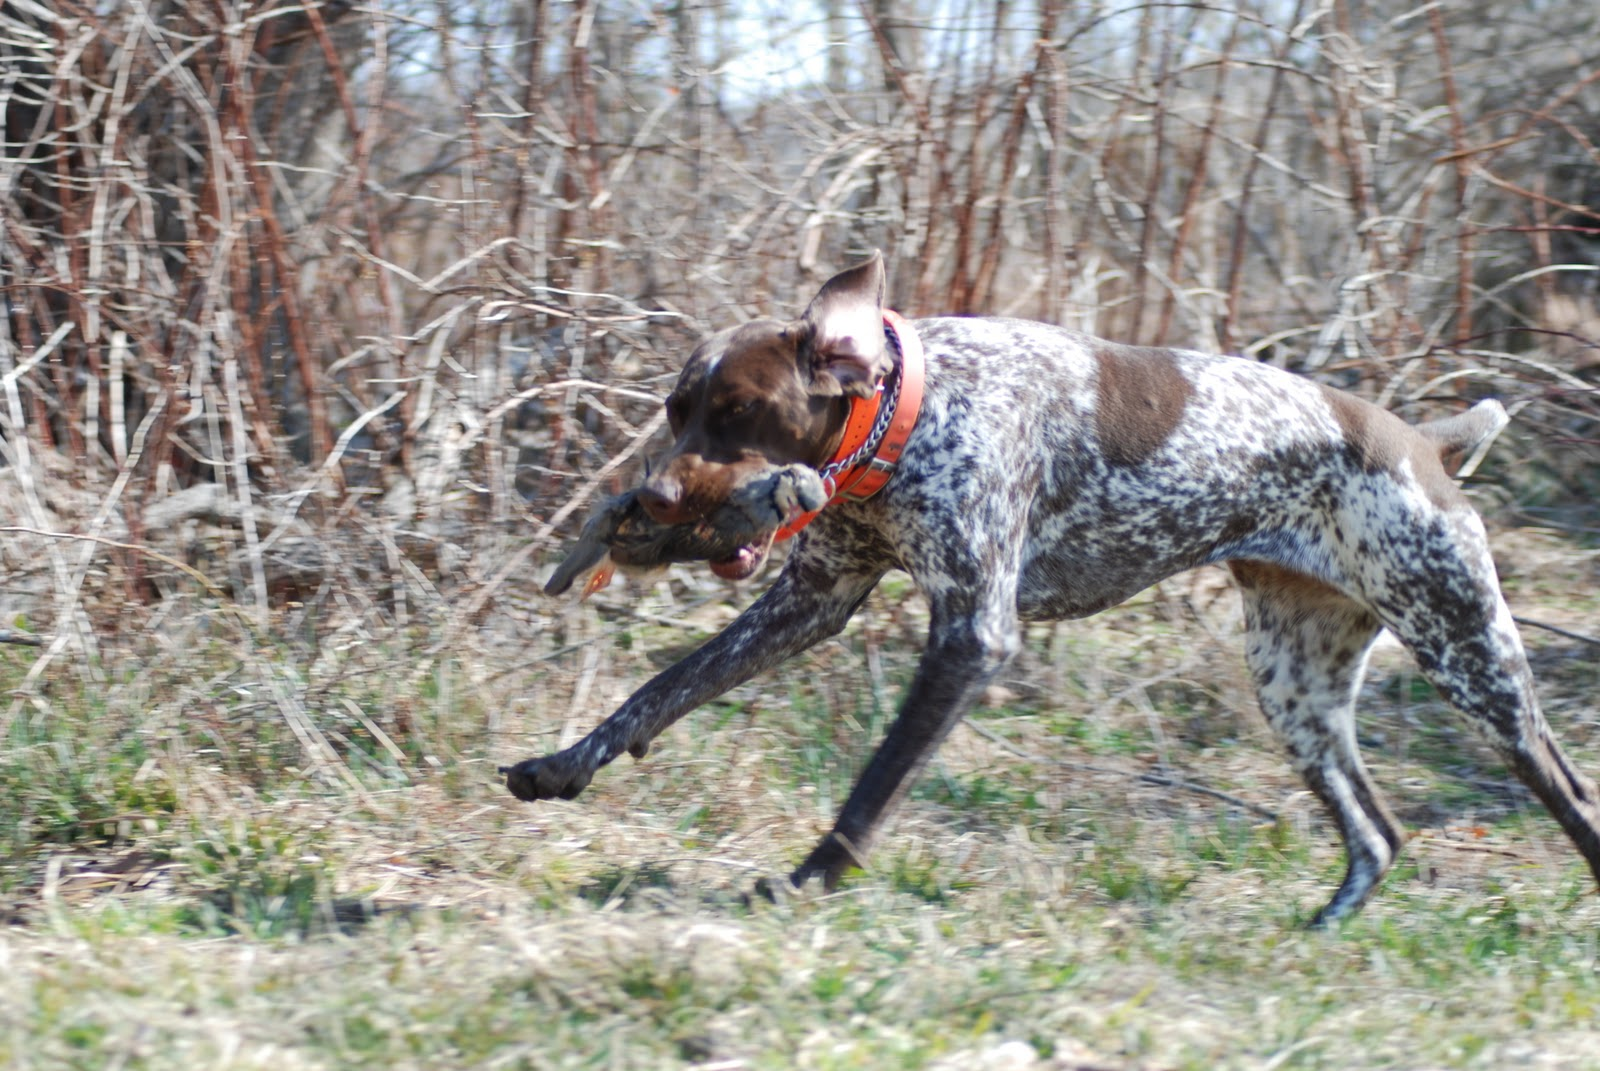 Force Training Retrieving Dogs